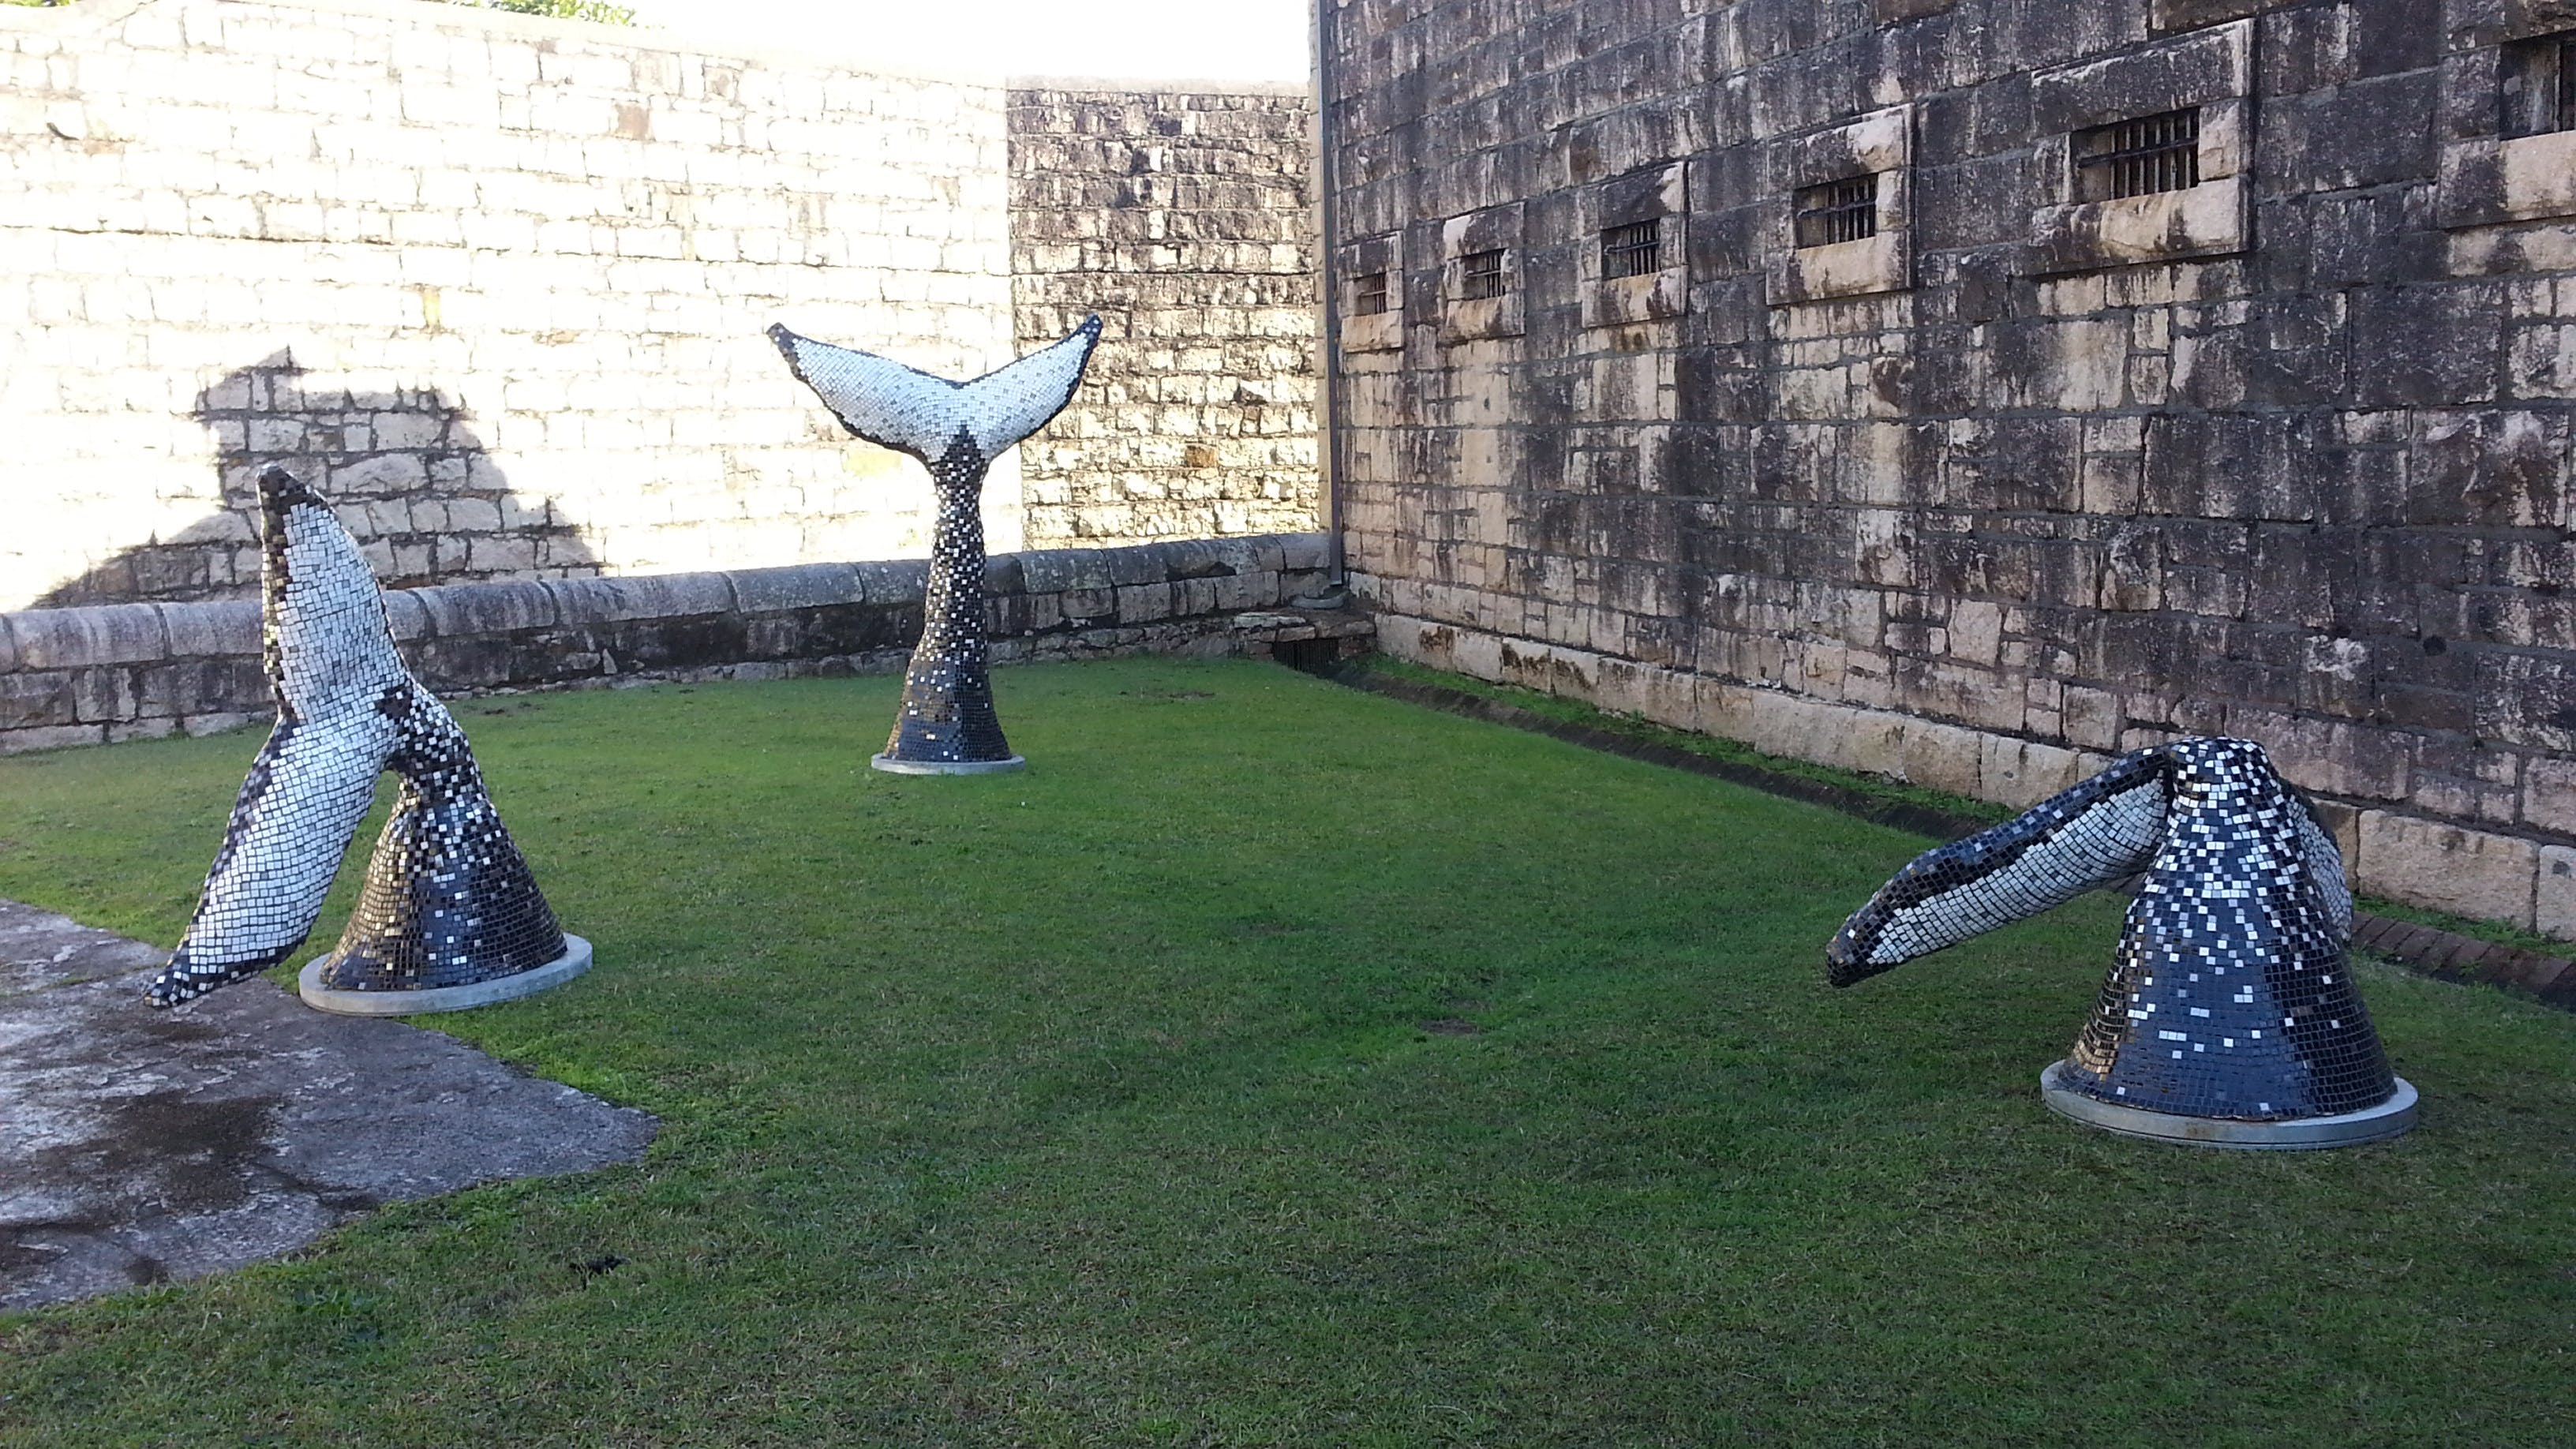 Sculptures in the Gaol - Trial Bay Gaol